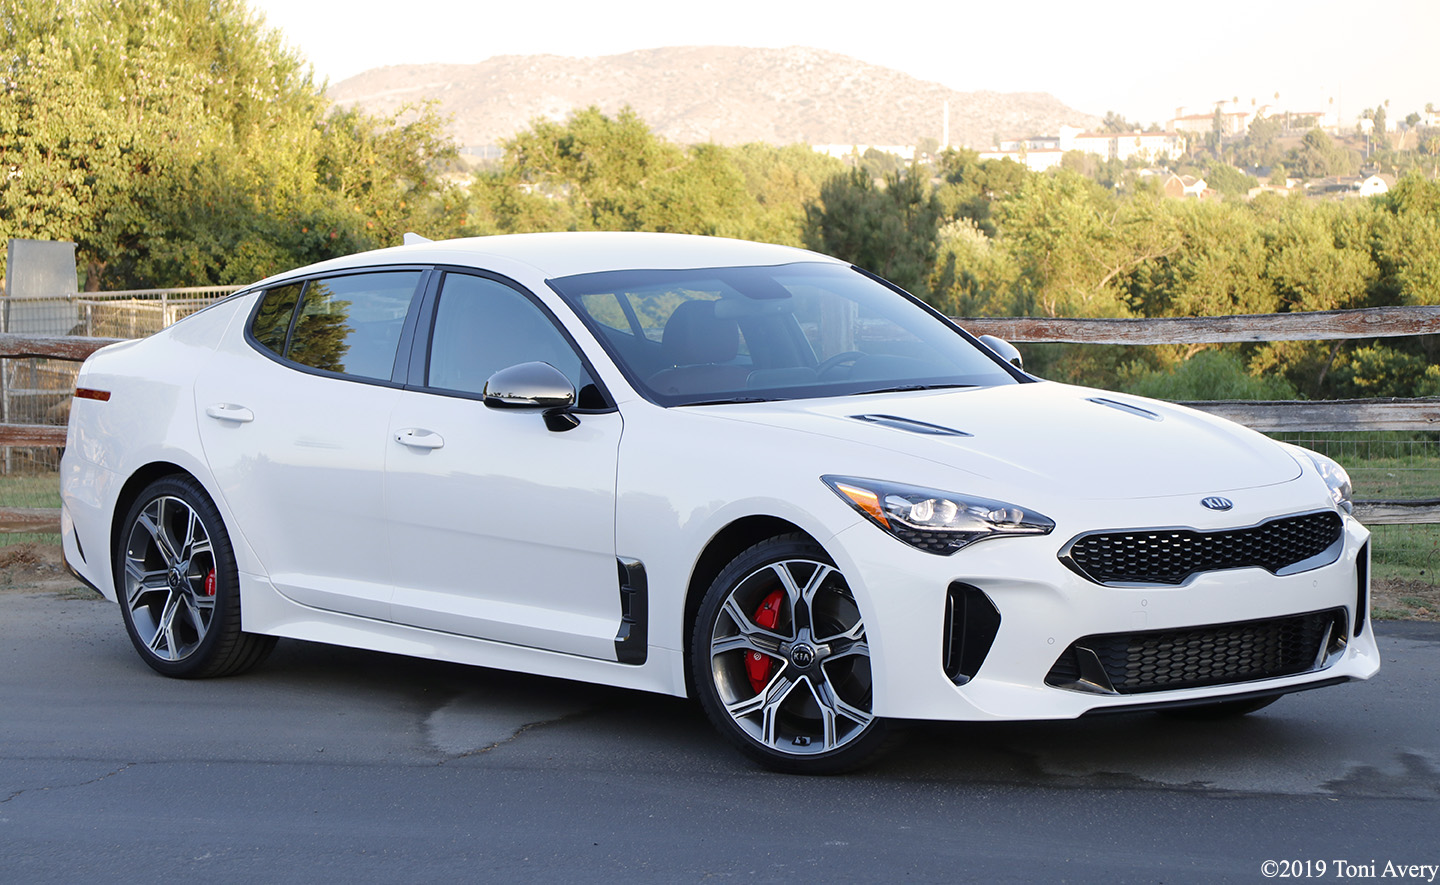 2019 Kia Stinger GT RWD Review (w/ video)